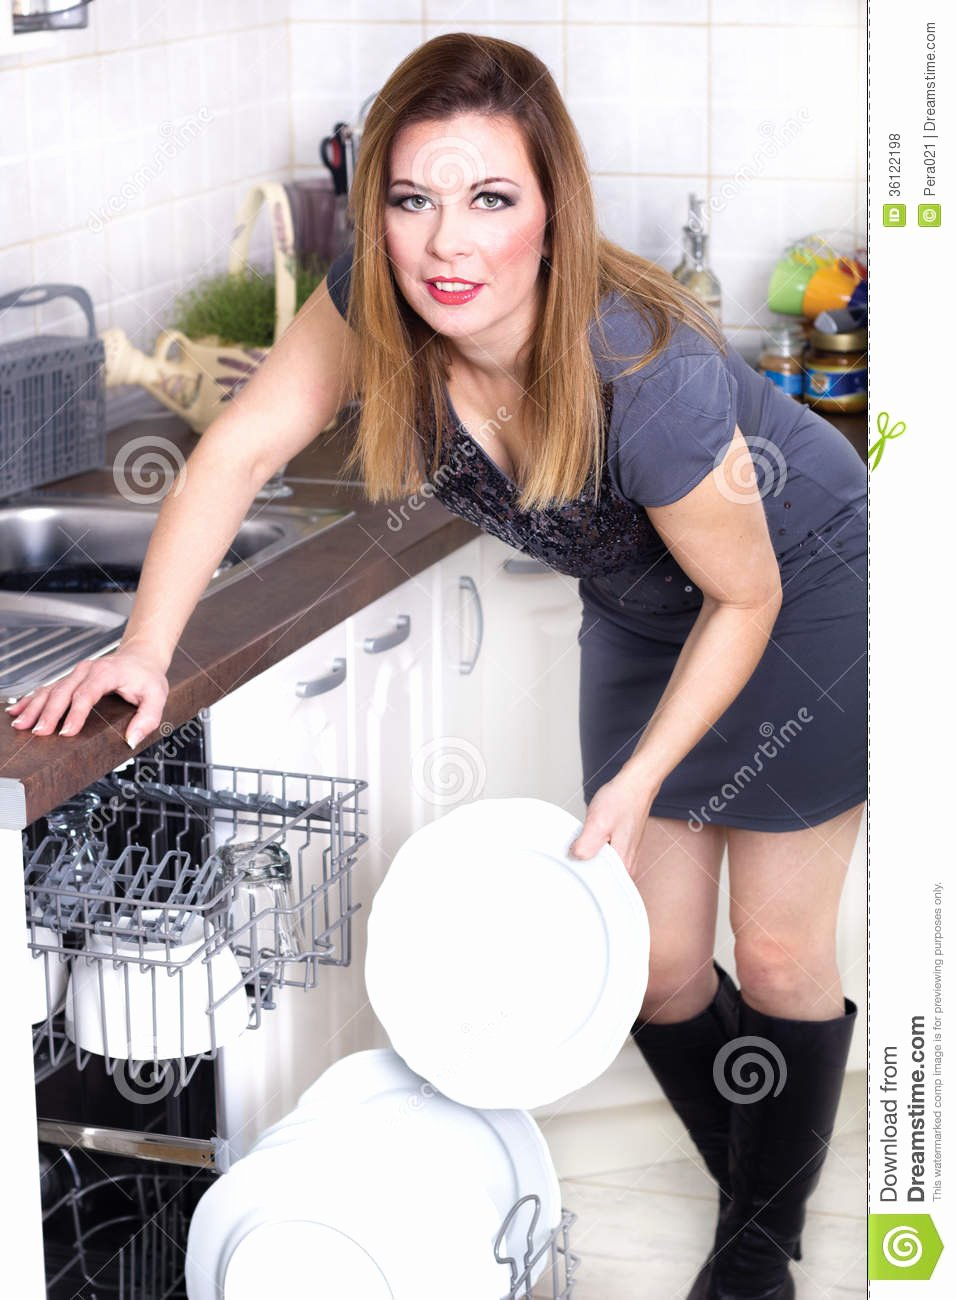 Free Sexy Women Photos Awesome Woman In Kitchen Doing Housework Stock Image